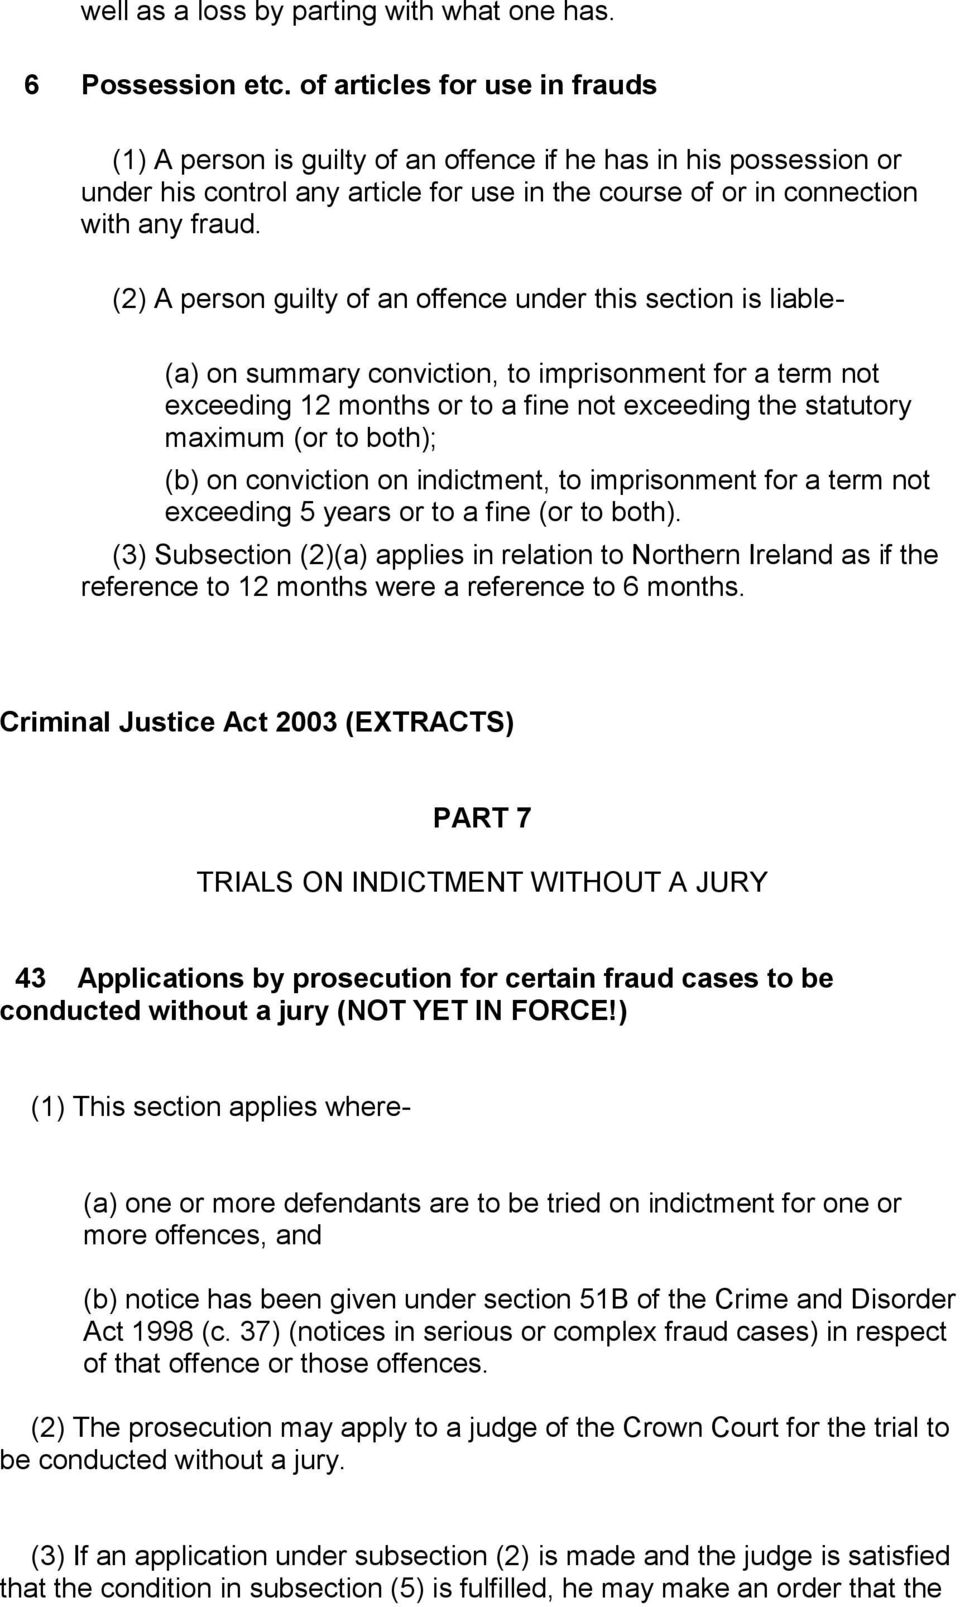 (2) A person guilty of an offence under this section is liable- (a) on summary conviction, to imprisonment for a term not exceeding 12 months or to a fine not exceeding the statutory maximum (or to